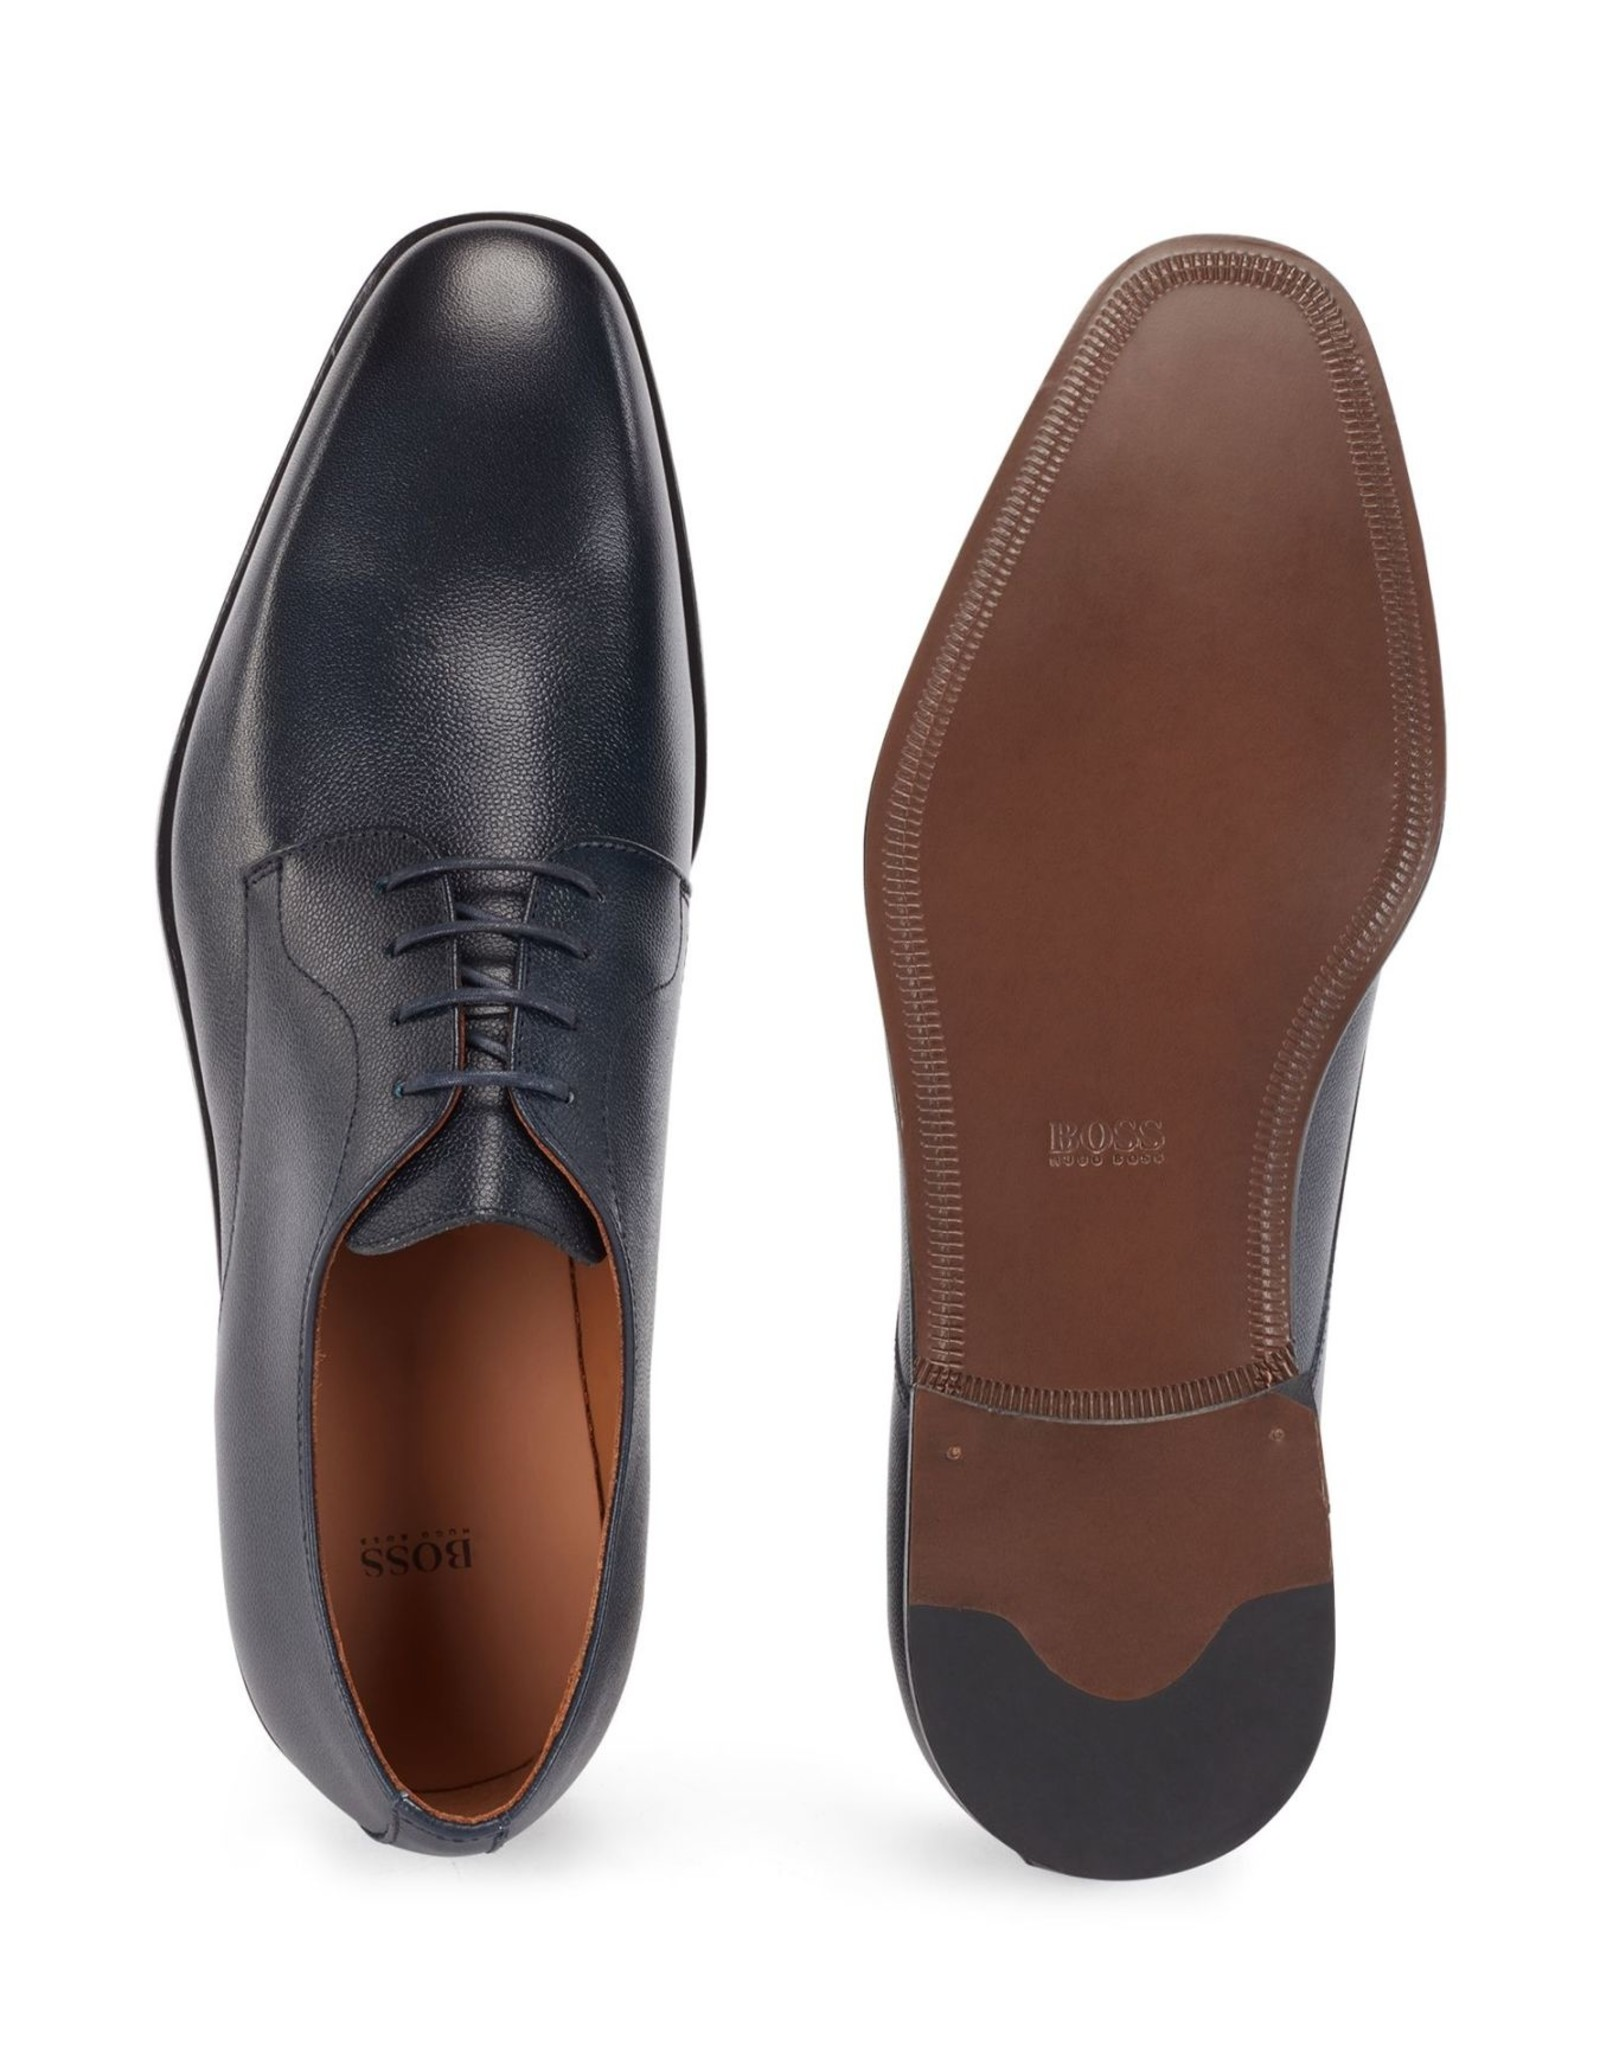 Hugo Boss Hugo Boss Lisbon Derby Dress Shoe